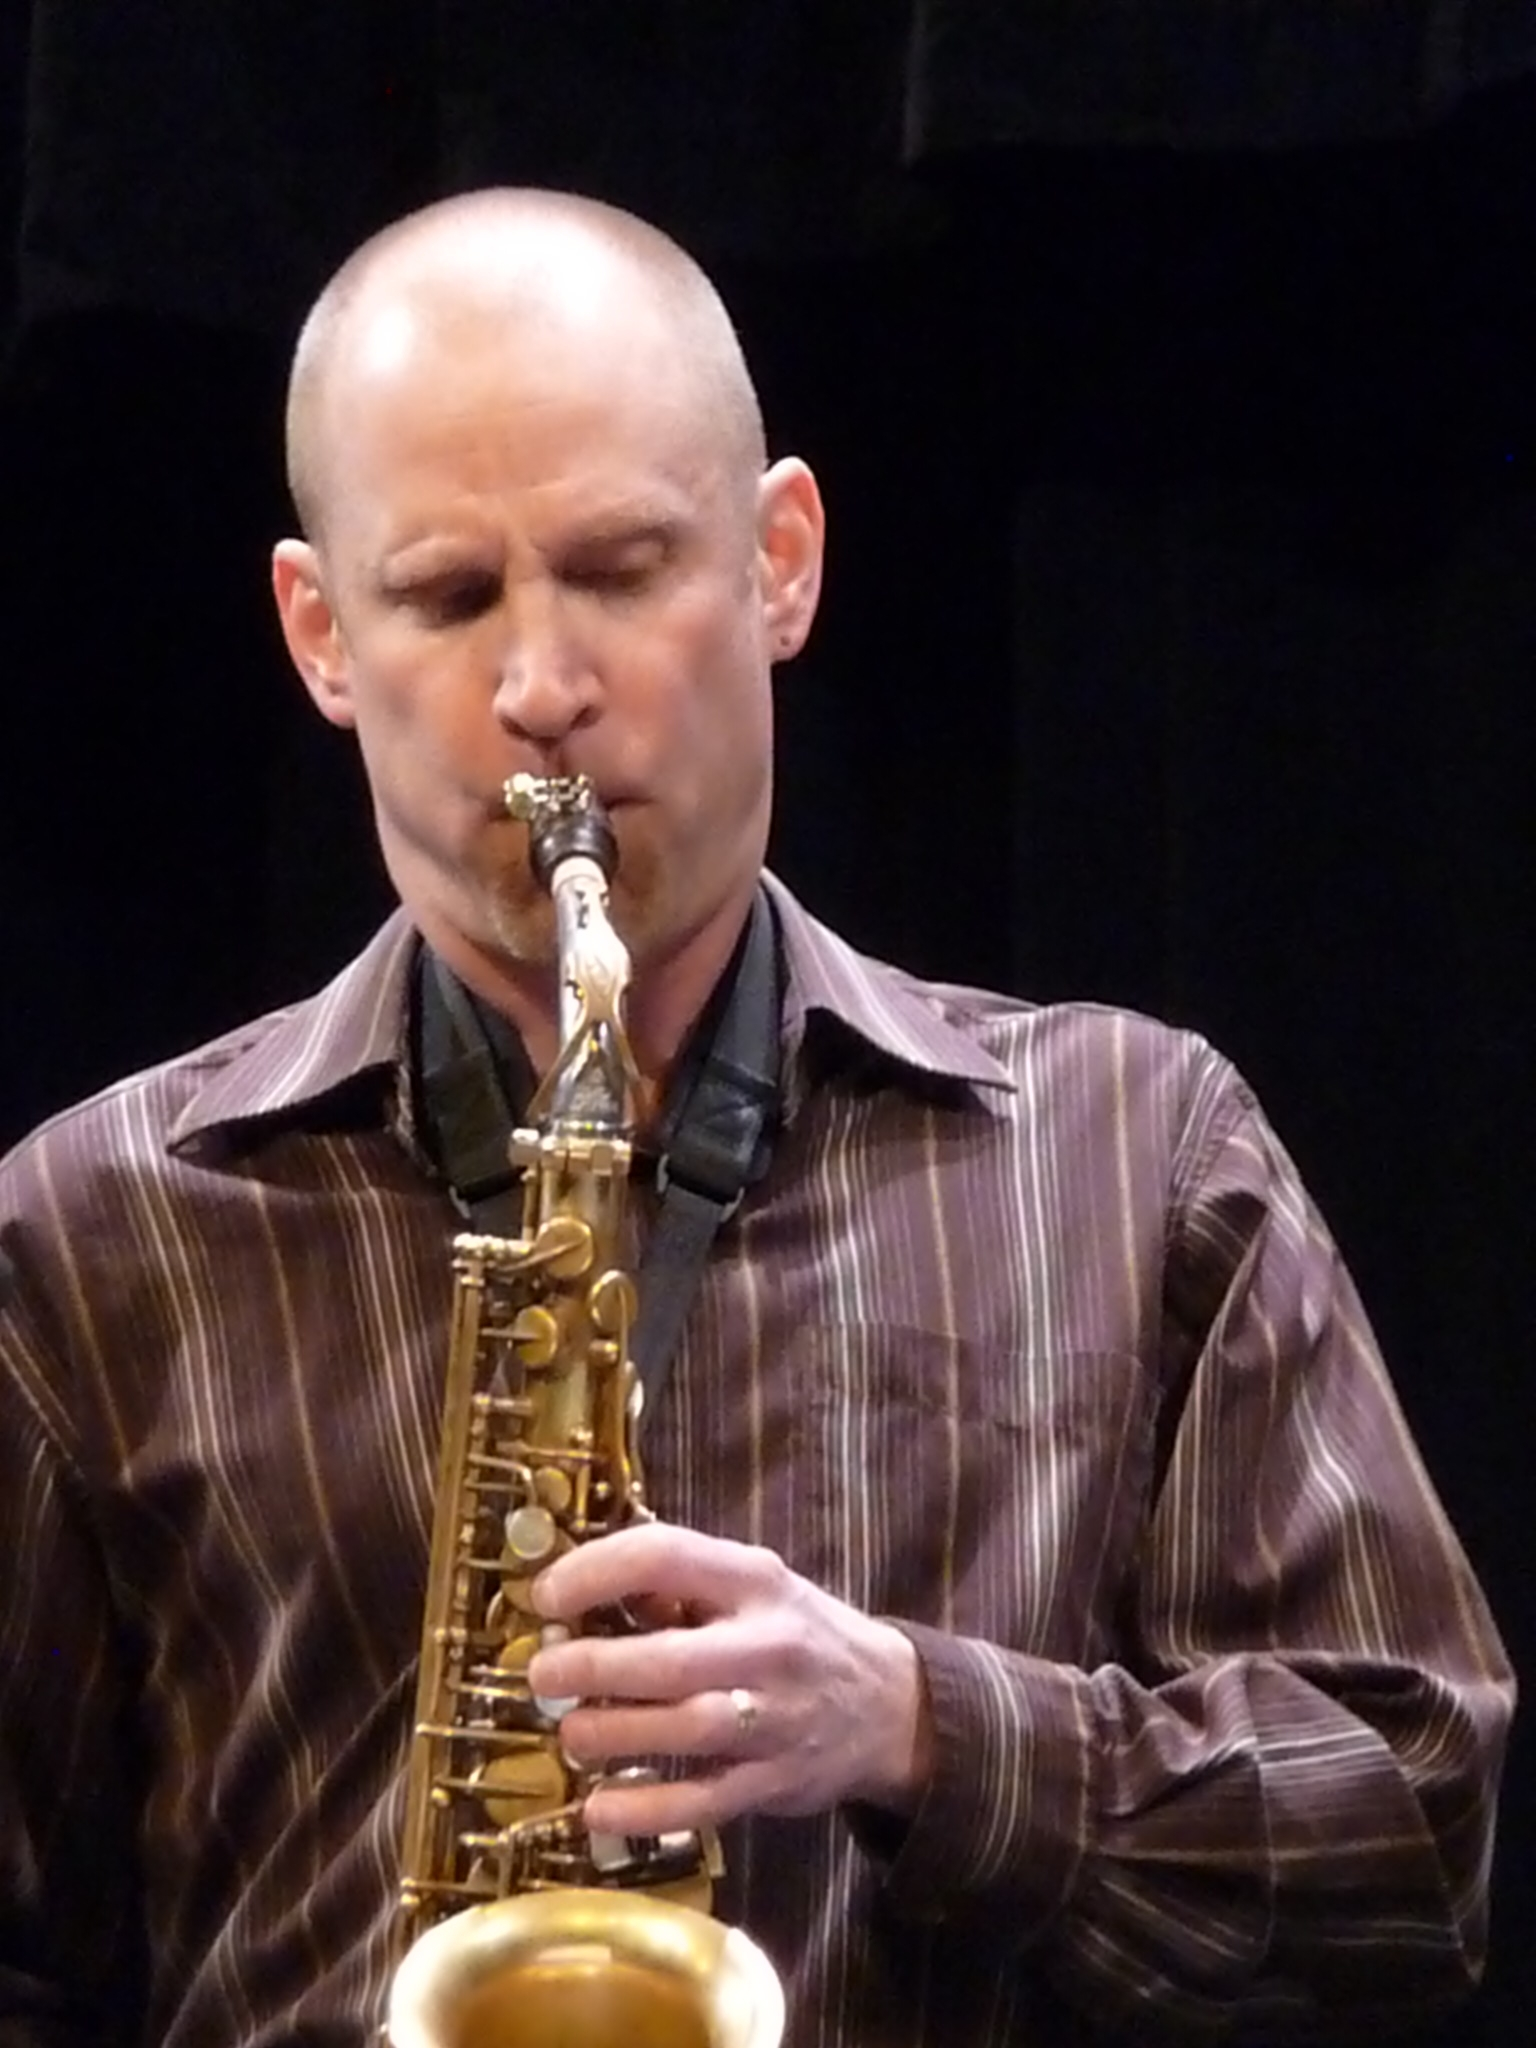 Bobby Selvaggio at 2011 Lakeland Jazz Festival